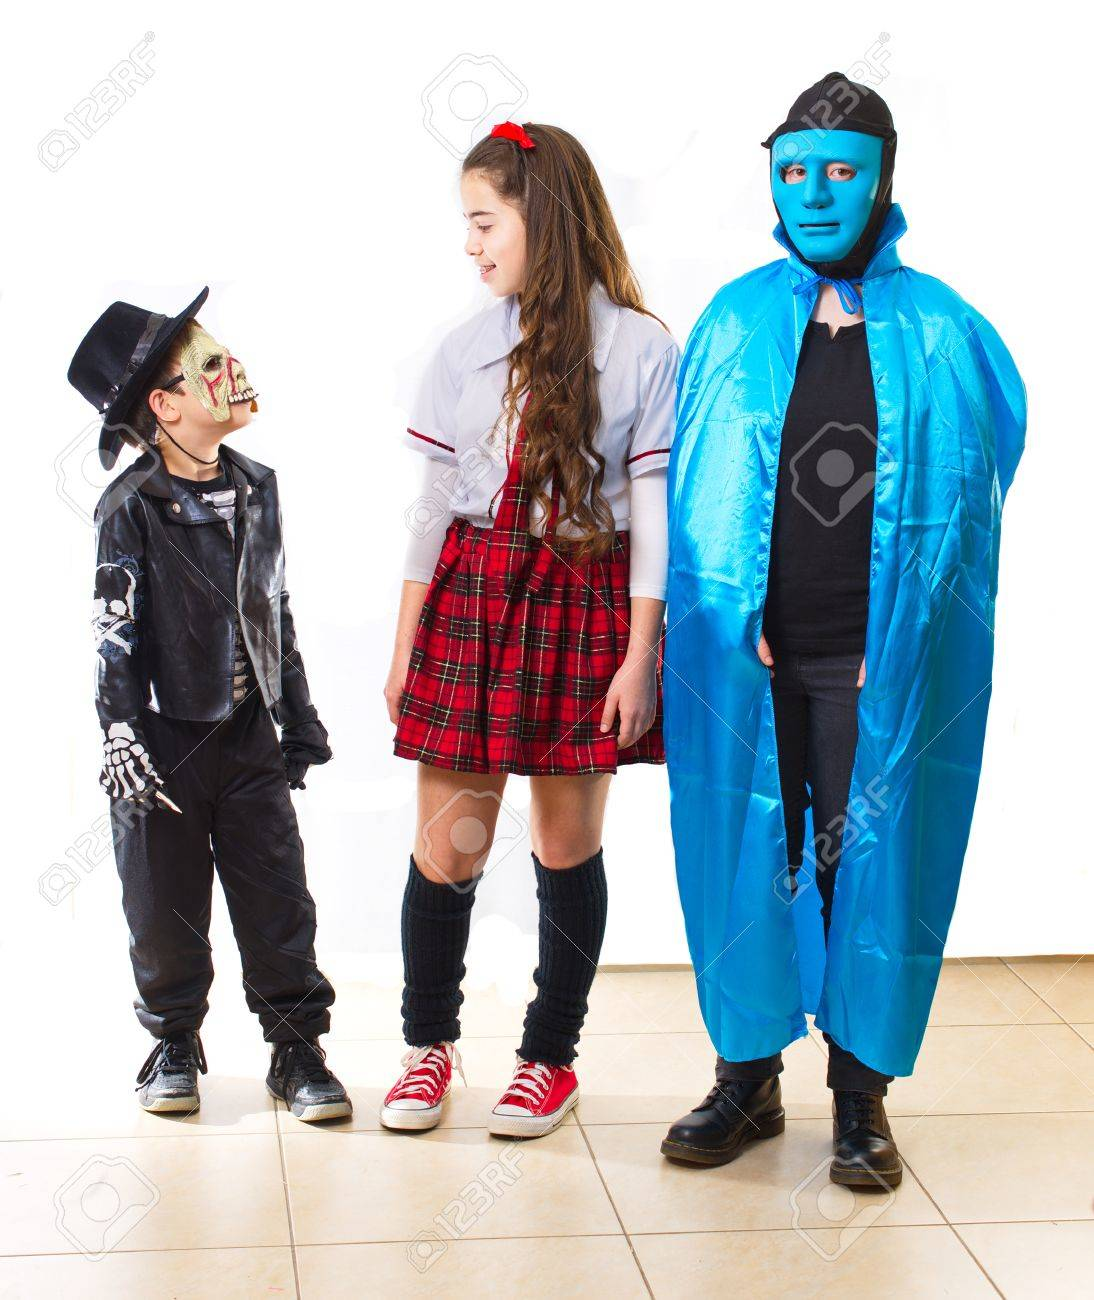 Stock Photo - Three siblings dressed up for Halloween / Purim as a 60u0027s college girl a zombie and a blue man  sc 1 st  123RF.com & Three Siblings Dressed Up For Halloween / Purim As A 60u0027s College ...